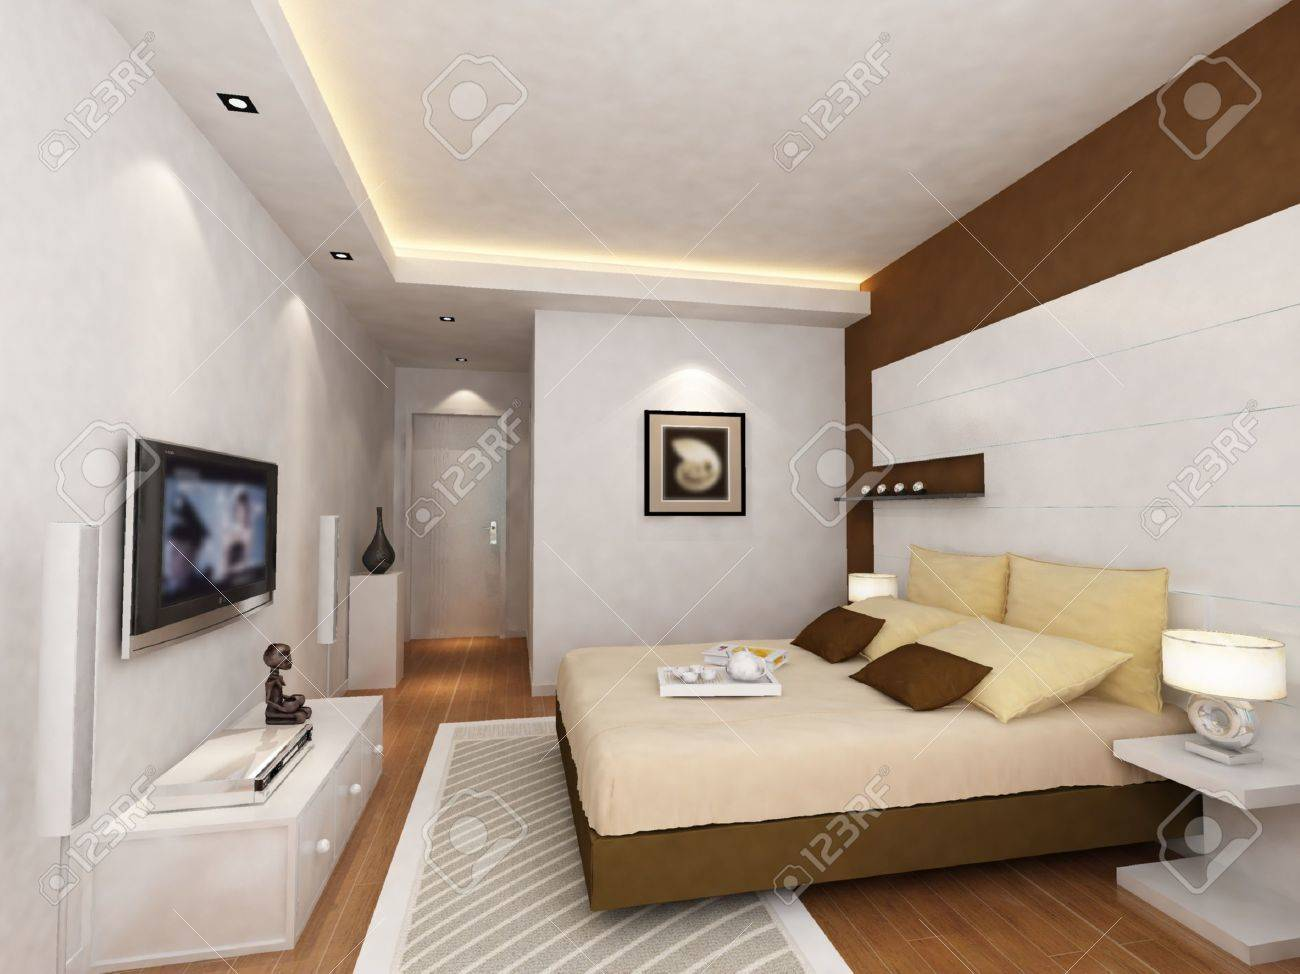 Home interior bedroom - Rendering Of Home Interior Focused On Bed Room Stock Photo 9353989